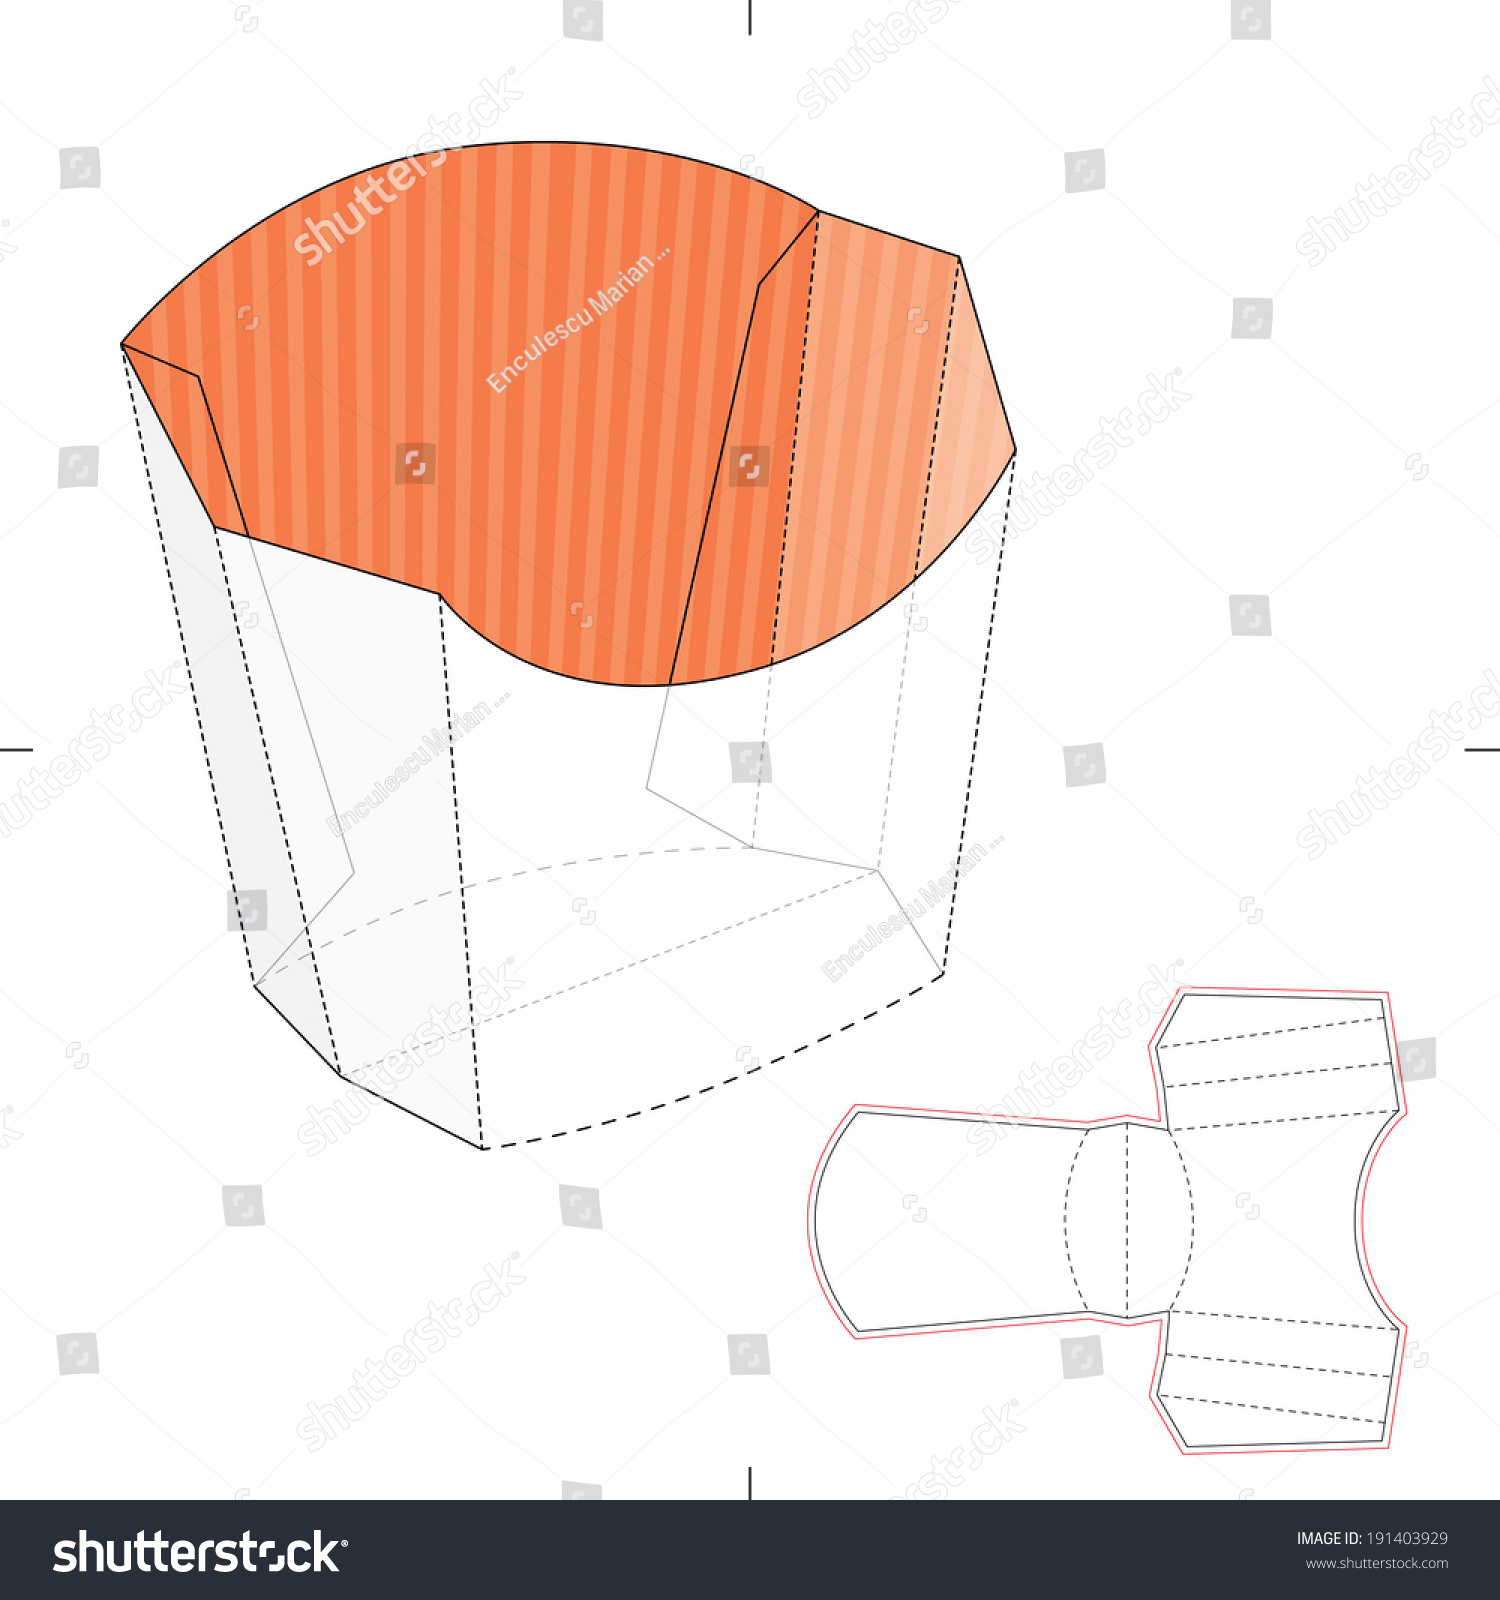 french fries packaging template - french fries disposable paper box die stock vector